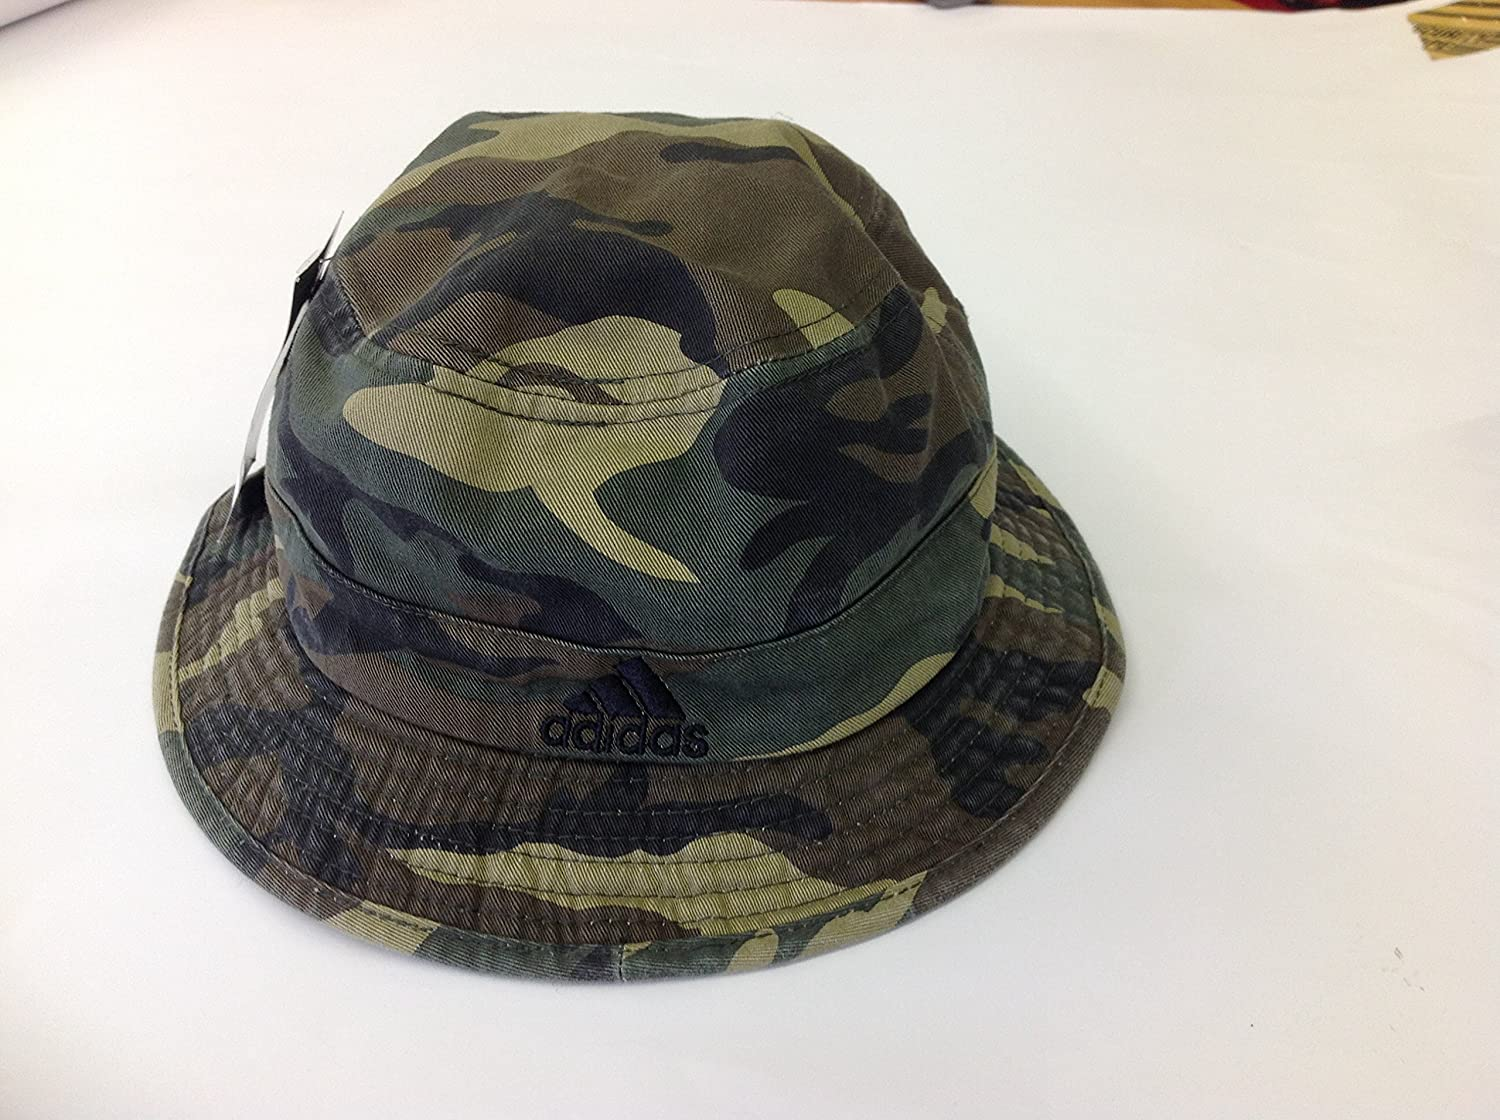 58daaca3223 Amazon.com   indiana pacers Adidas NBA Bucket Hat - Camouflage   Sports    Outdoors